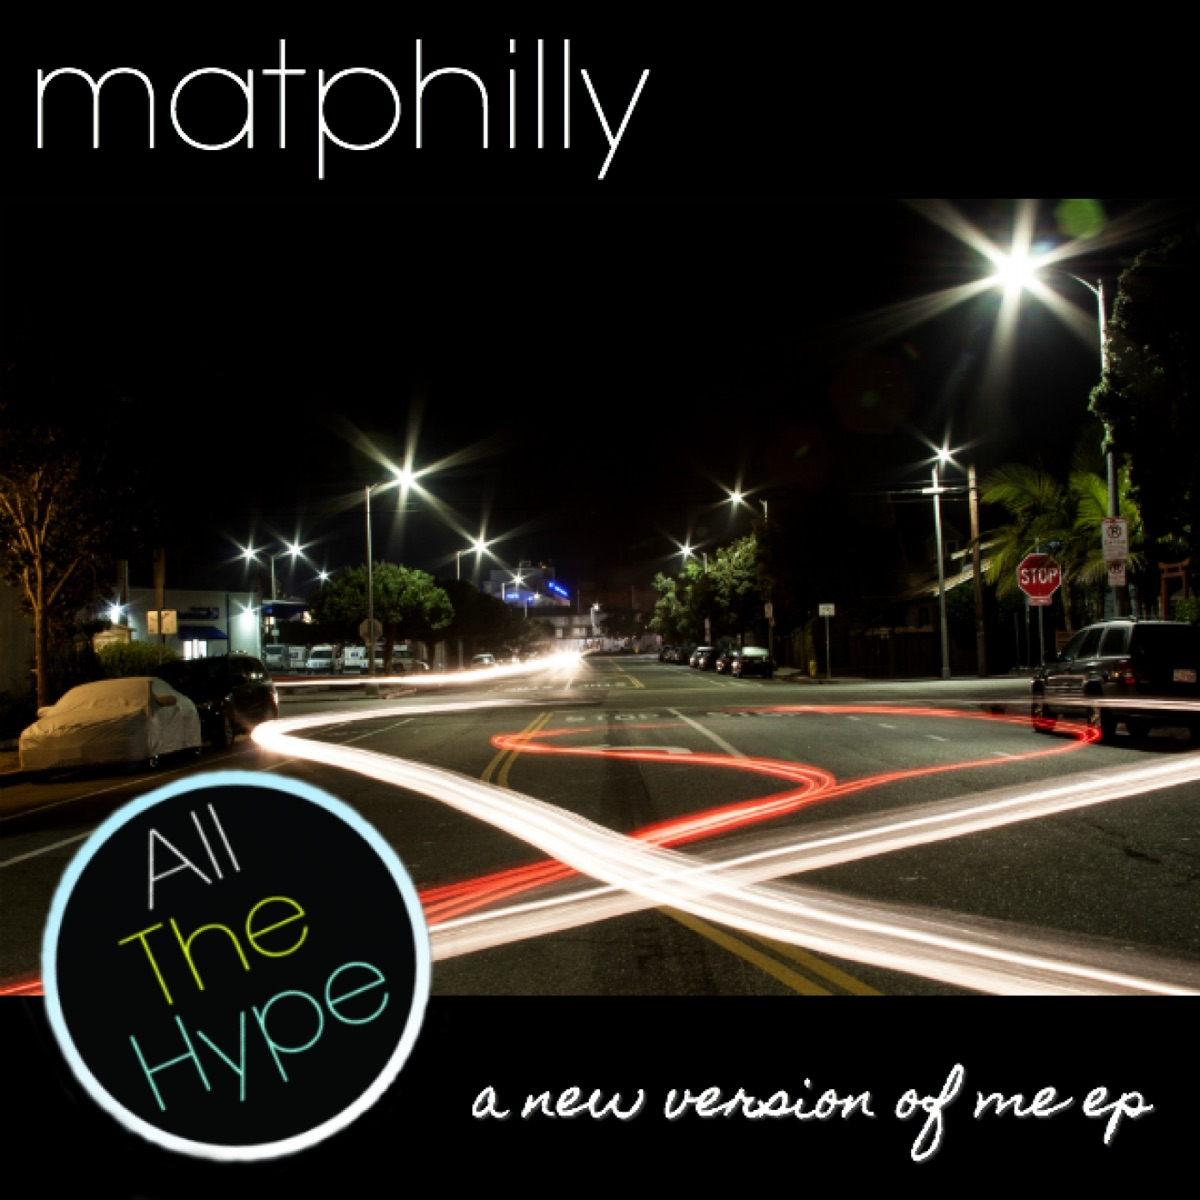 A New Version of Me EP - EP matphilly CD cover